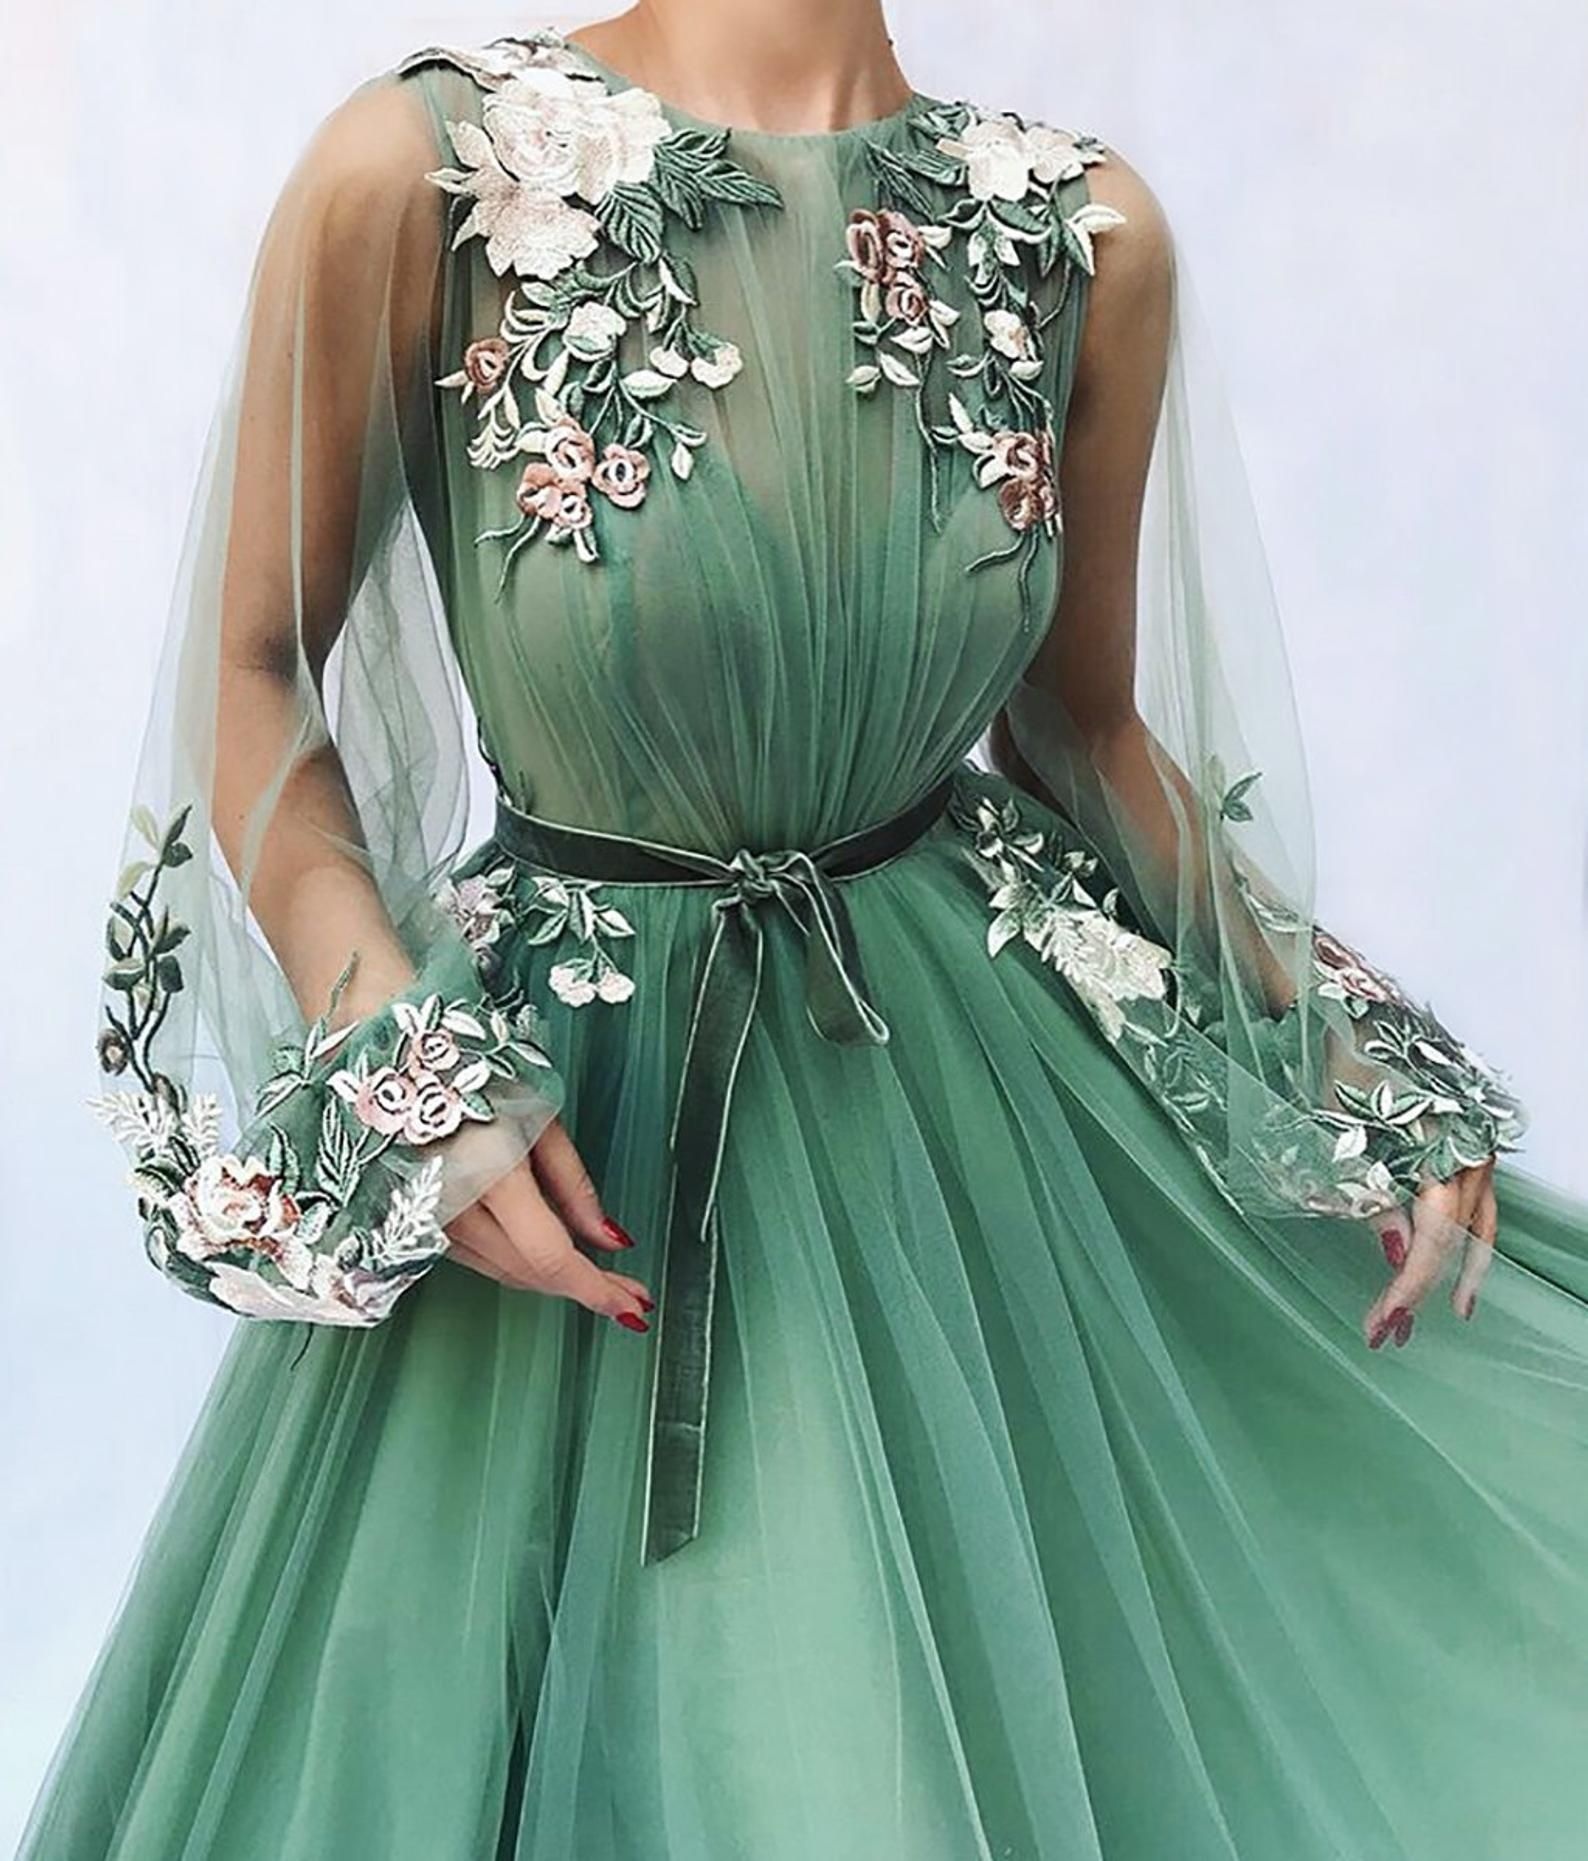 Custom Made Colored Wedding Dresses Etsy In 2021 Formal Dresses Prom Evening Dresses Prom Gowns [ 1861 x 1588 Pixel ]